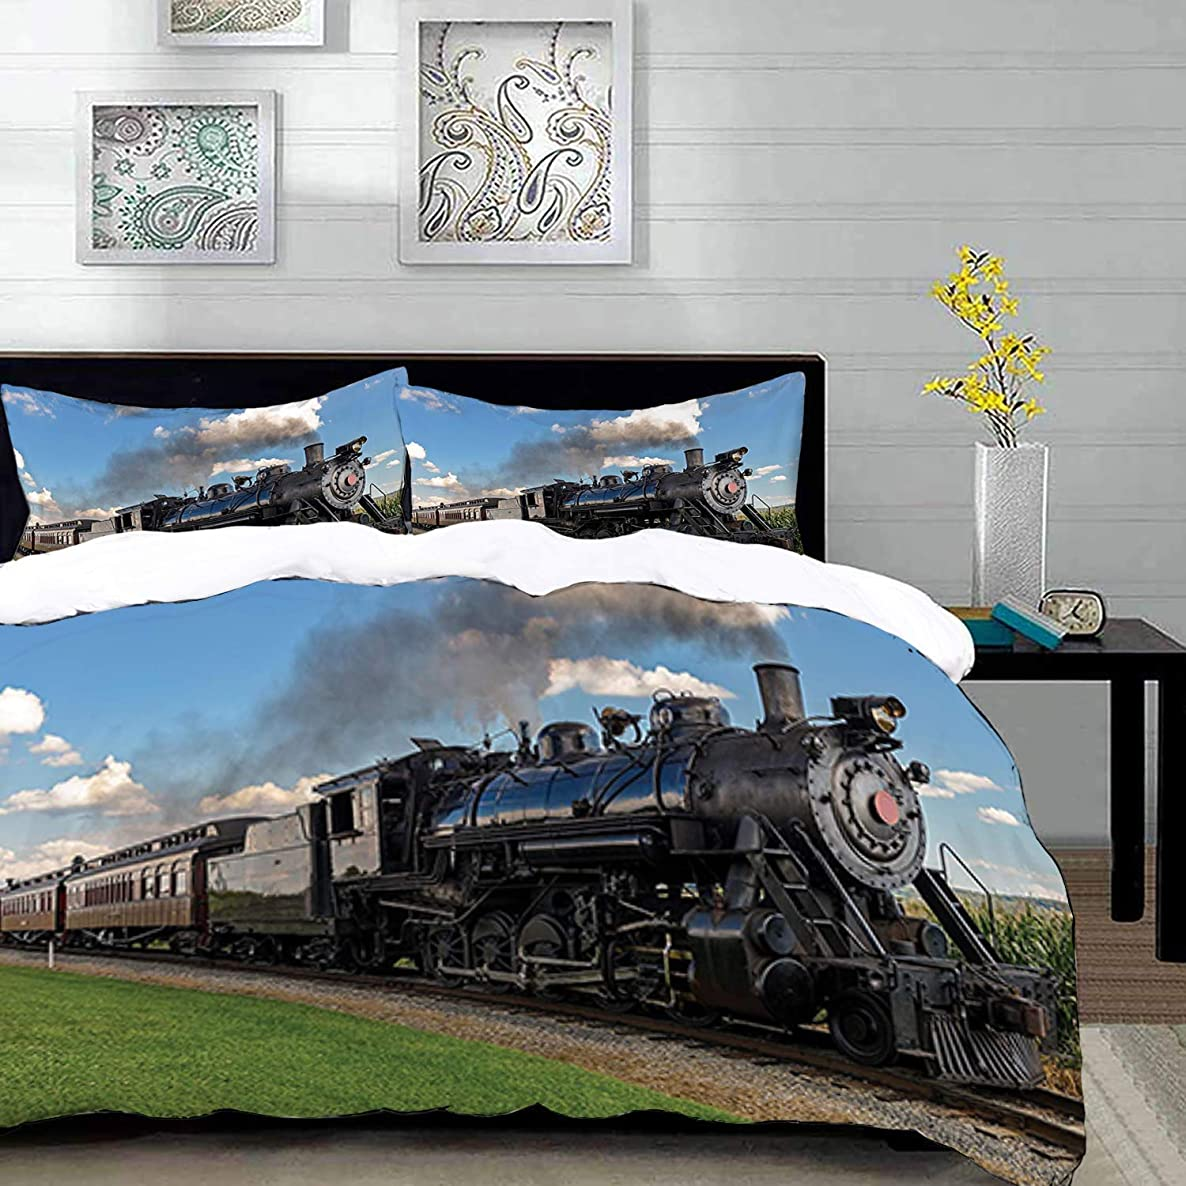 Duvet Cover Set,Steam Engine Vintage Black Locomotive in Countryside Landscape Green Grass Puff Train Picture Home Decor,Multicolor,Twin Size Decorative 3 Piece Bedding Set with 2 Pillow Shams, ,Super